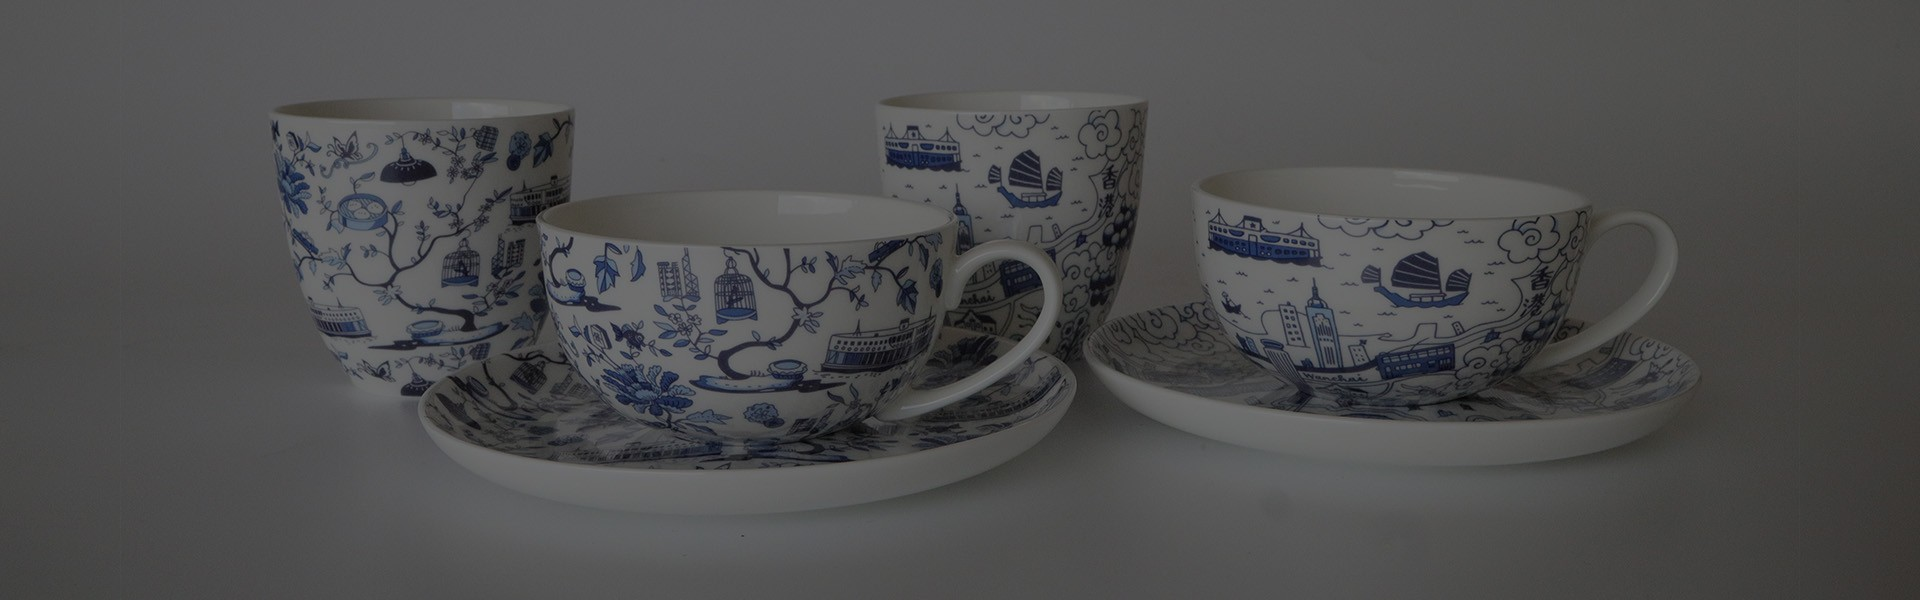 Cups and Saucers / East-meets-west Cups